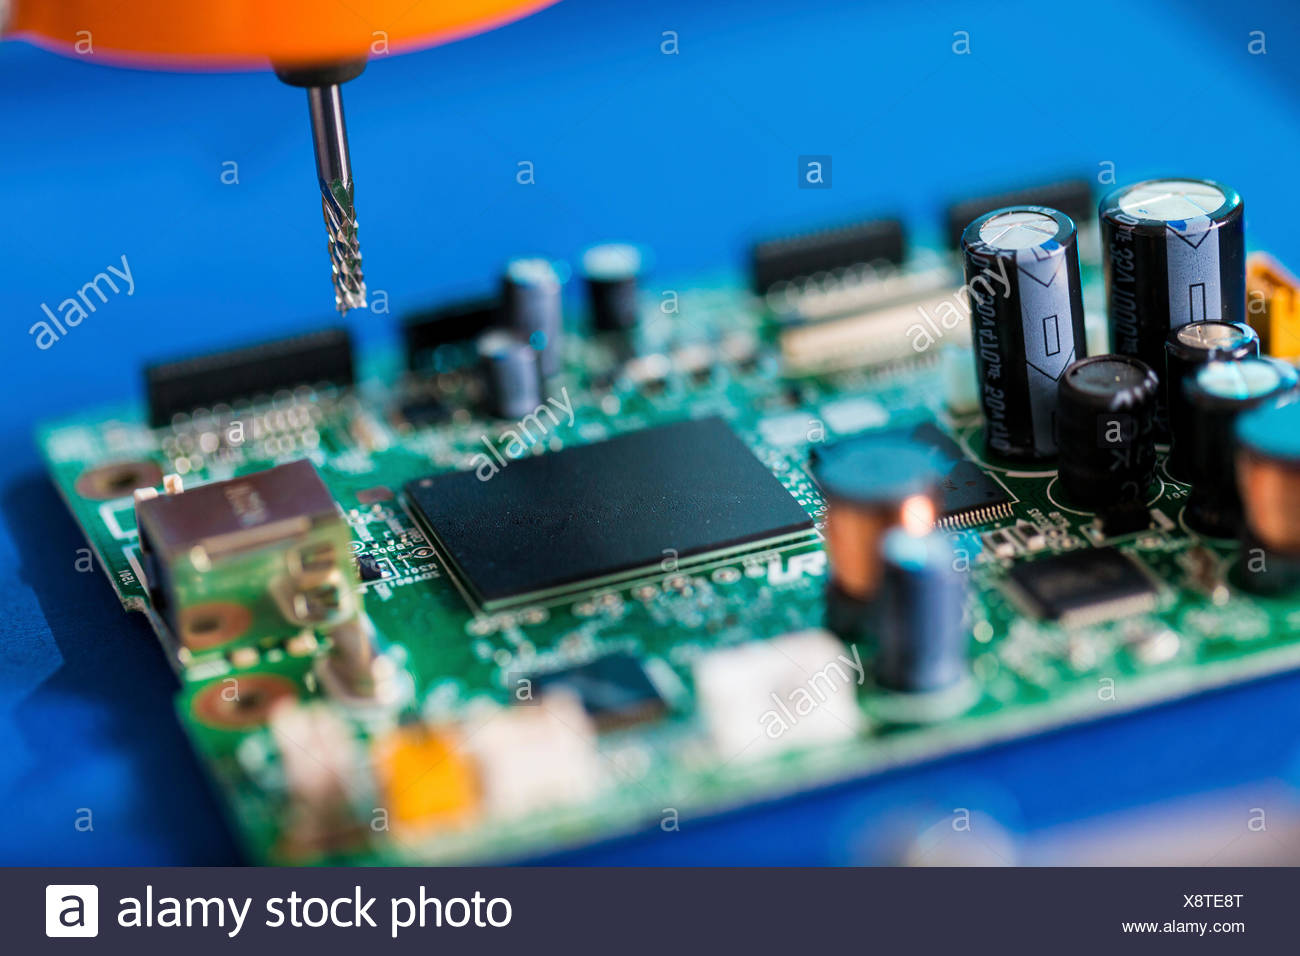 Printed Circuit Board Processing On Computer Numerical Control Machine